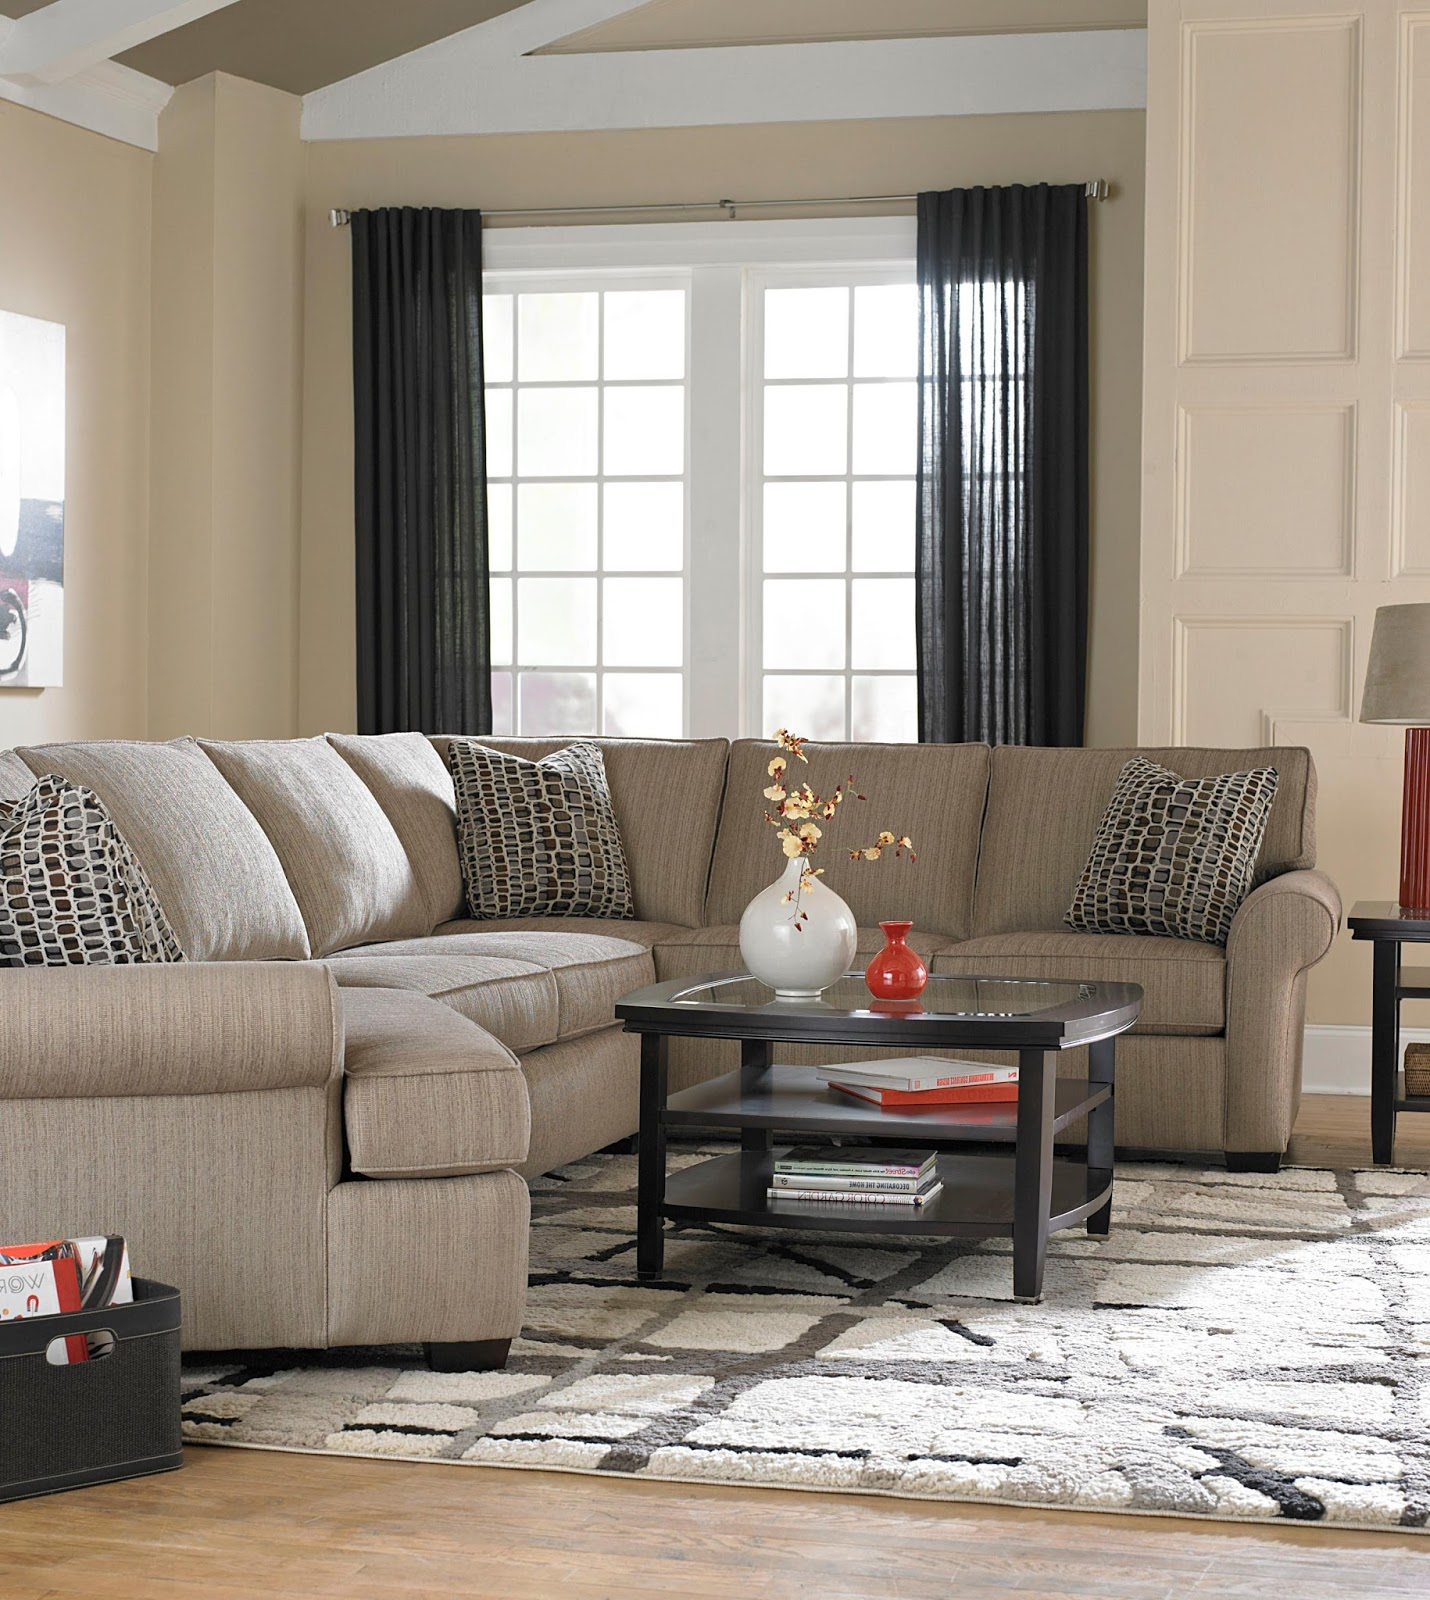 versatile seating with a sectional sofa